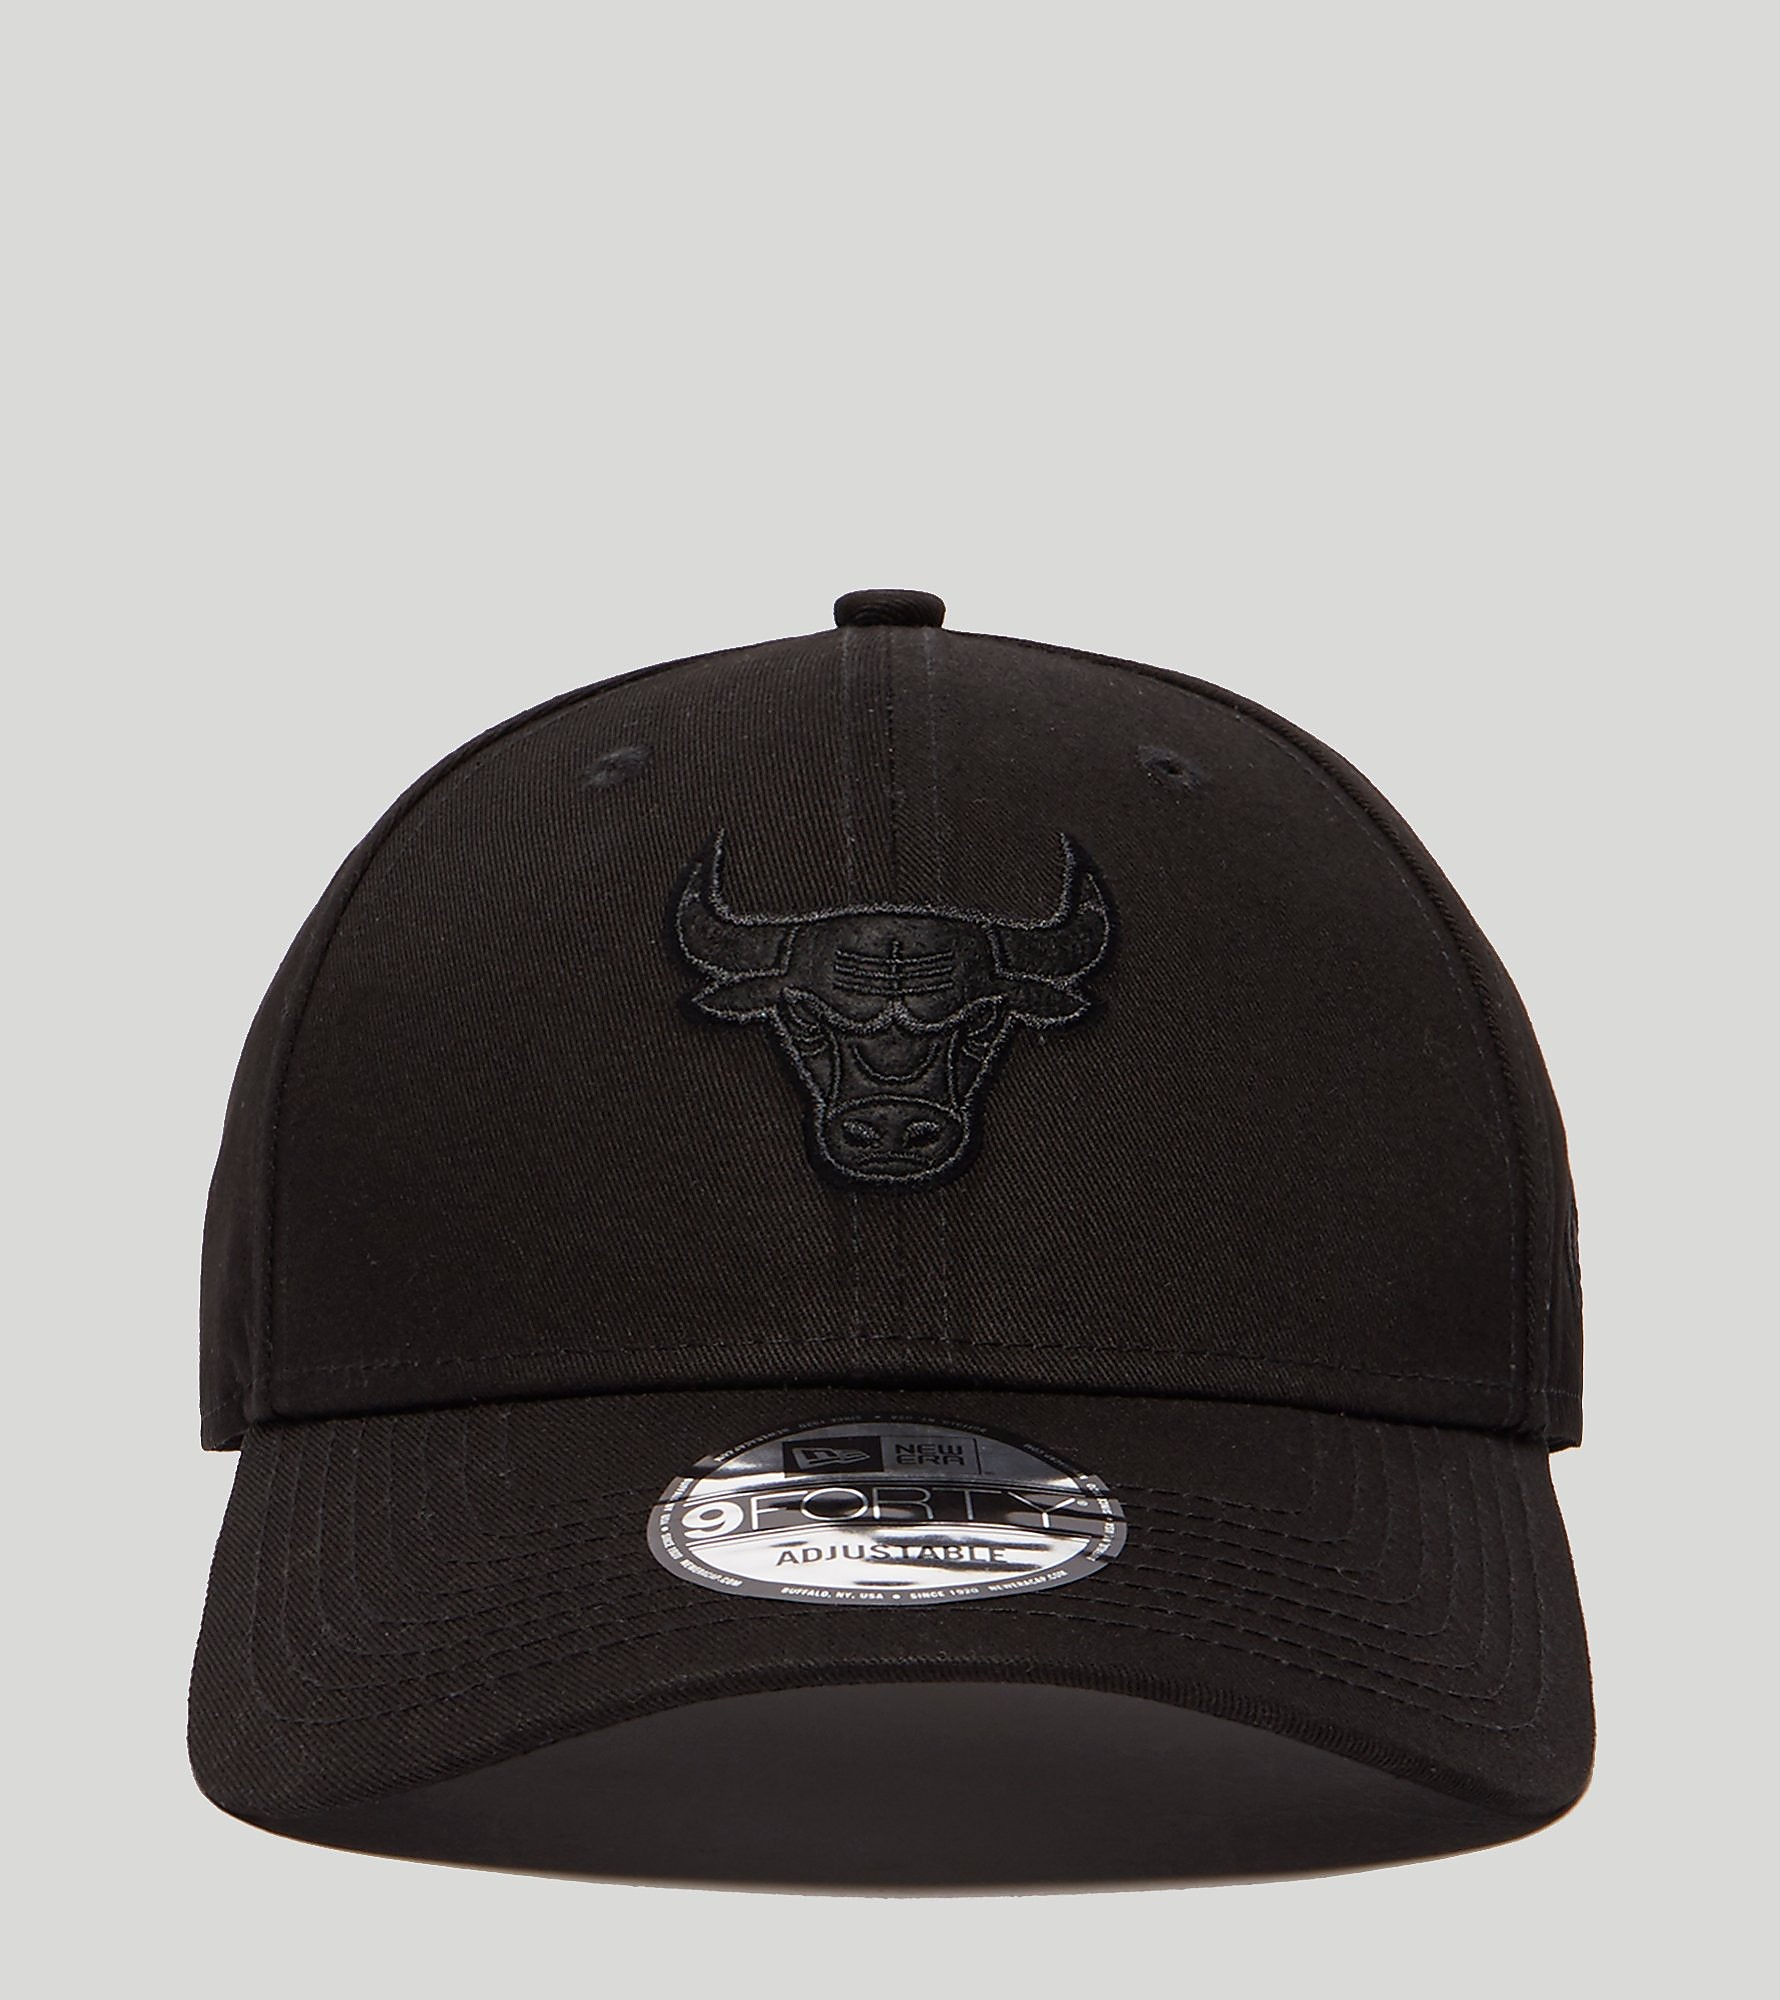 New Era 9FORTY Felt Bulls Strapback